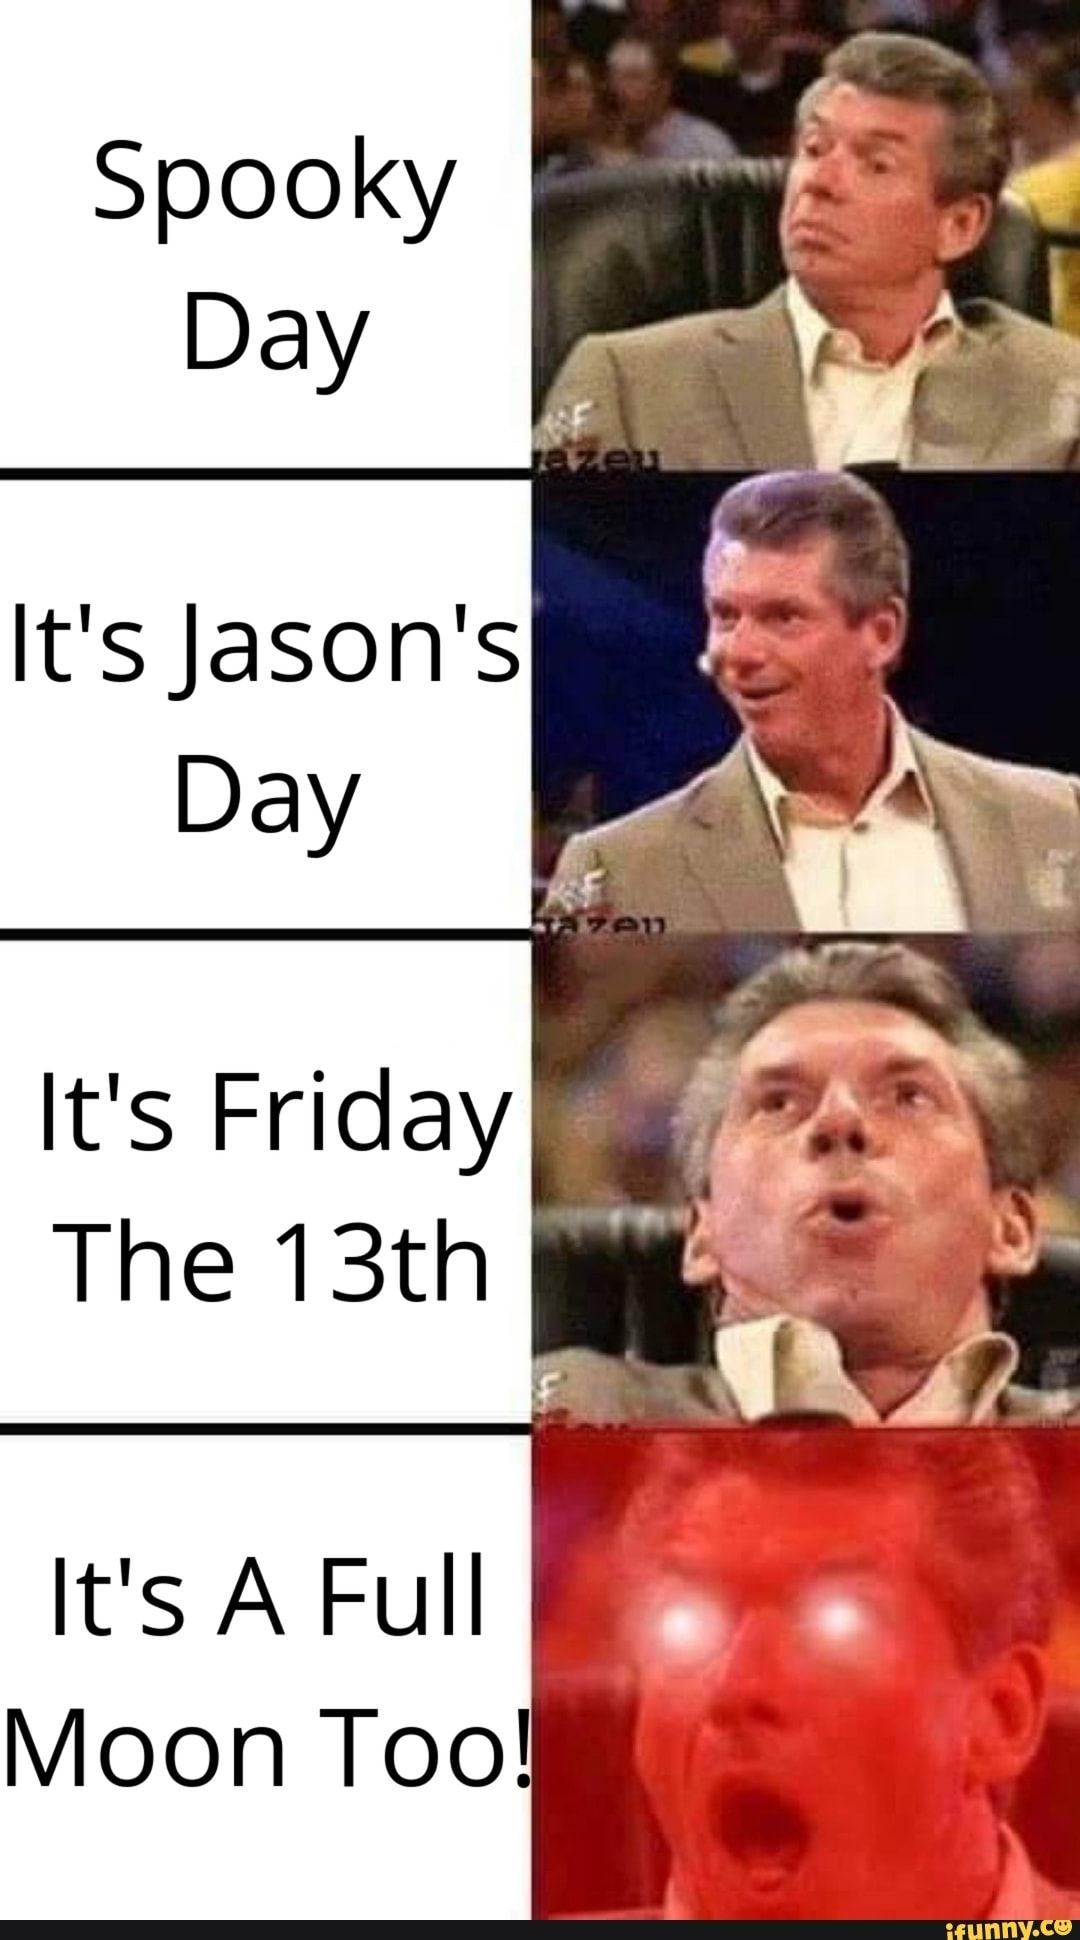 Picture memes bBoaqll17: 4 comments — iFunny It's Friday .« The 13th '